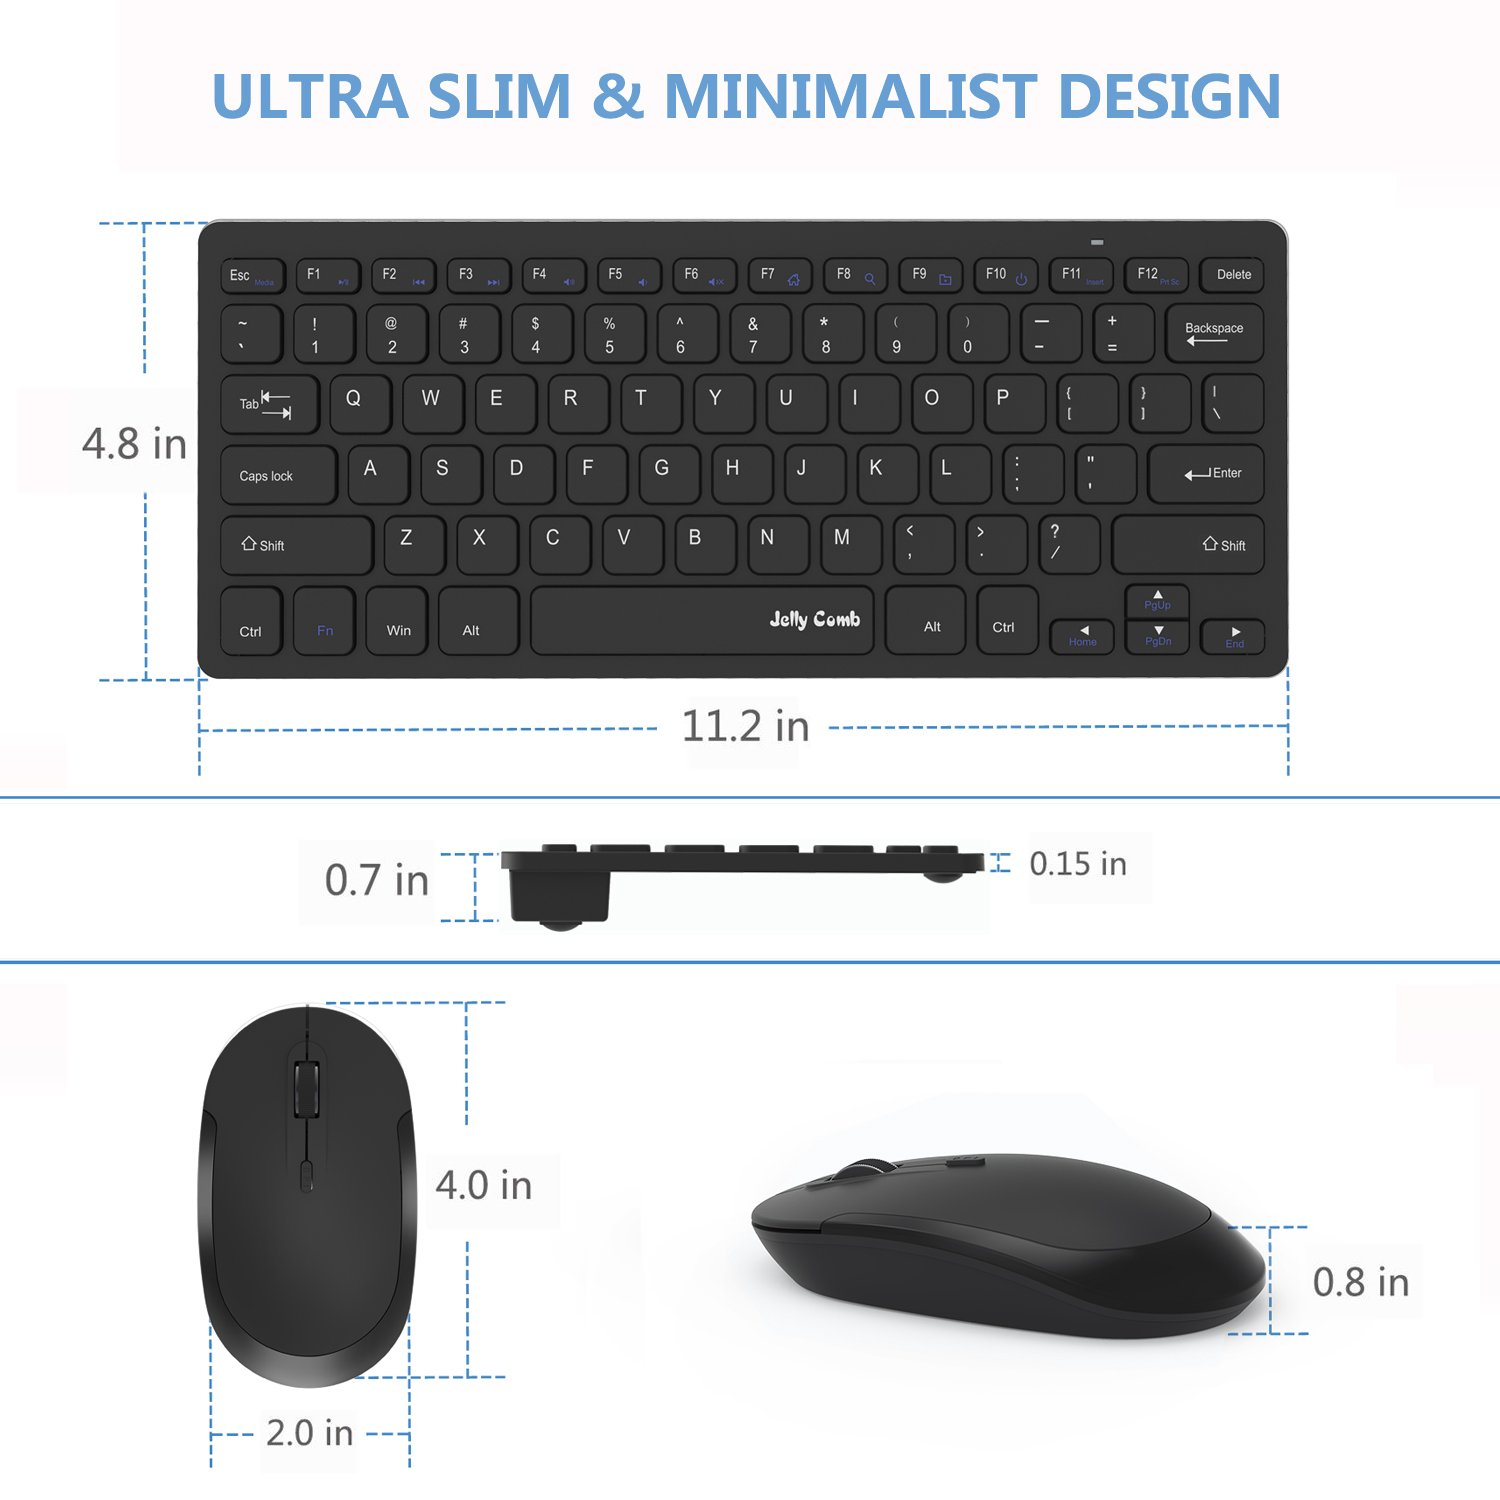 Wireless Keyboard Mouse, Jelly Comb 2.4GHz Ultra Thin Compact Portable SMALL Wireless Keyboard and Mouse Combo Set for PC, Desktop, Computer, Notebook, Laptop, Windows XP/Vista / 7/8 / 10 - Black by Jelly Comb (Image #3)